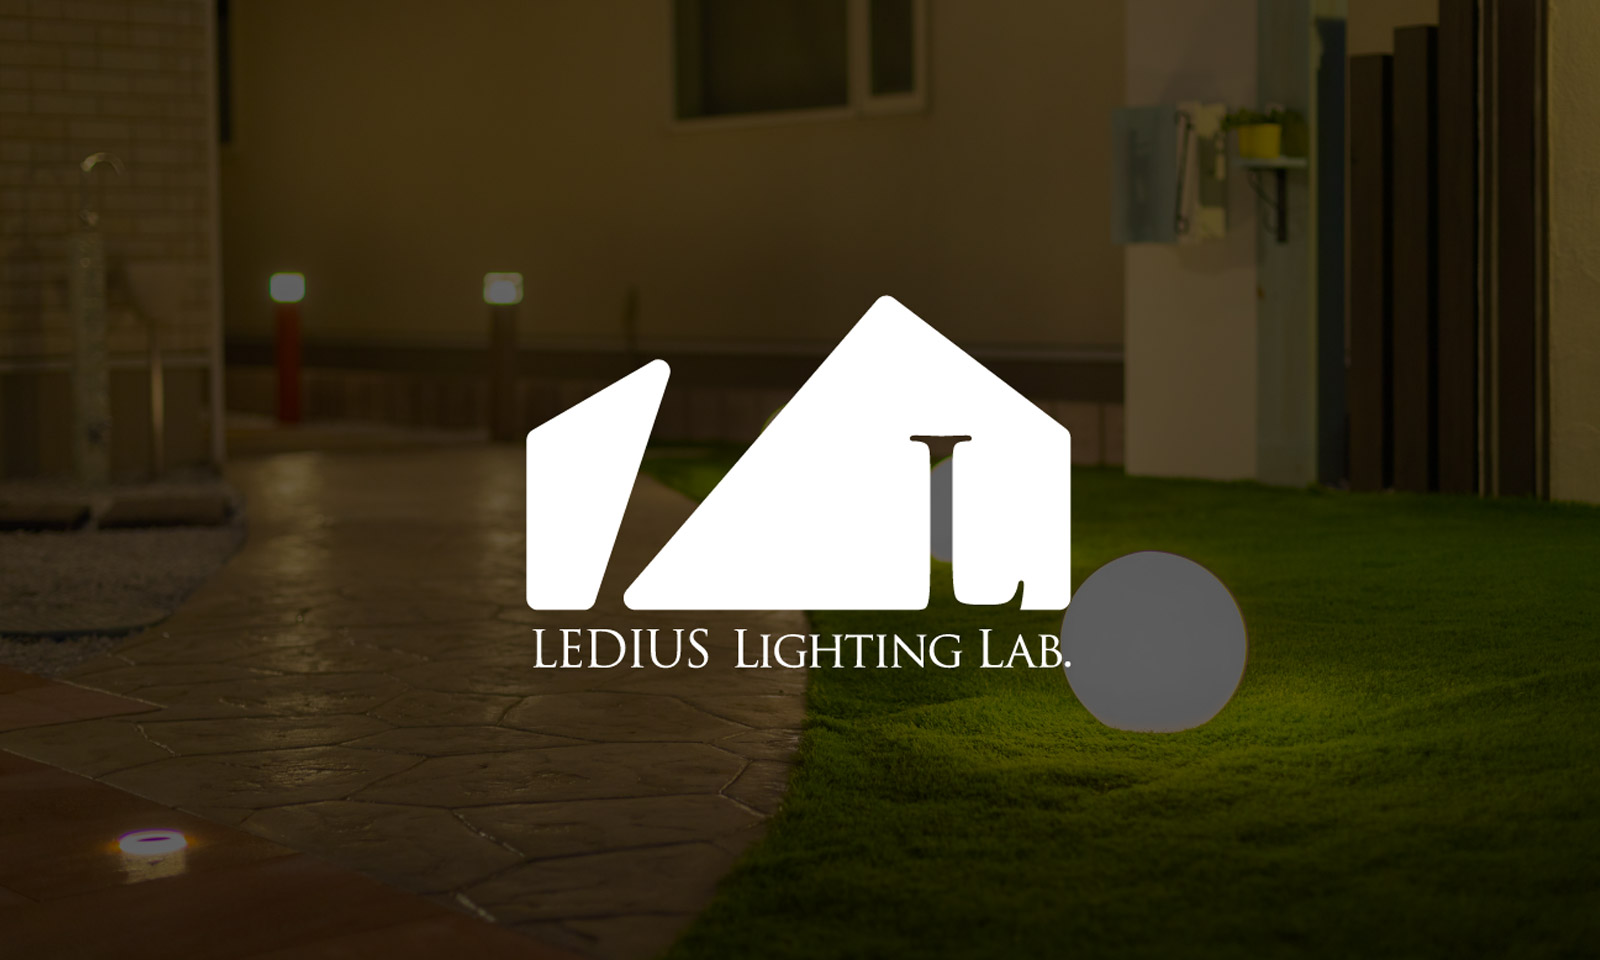 A Garden Up Light on LEDIUS